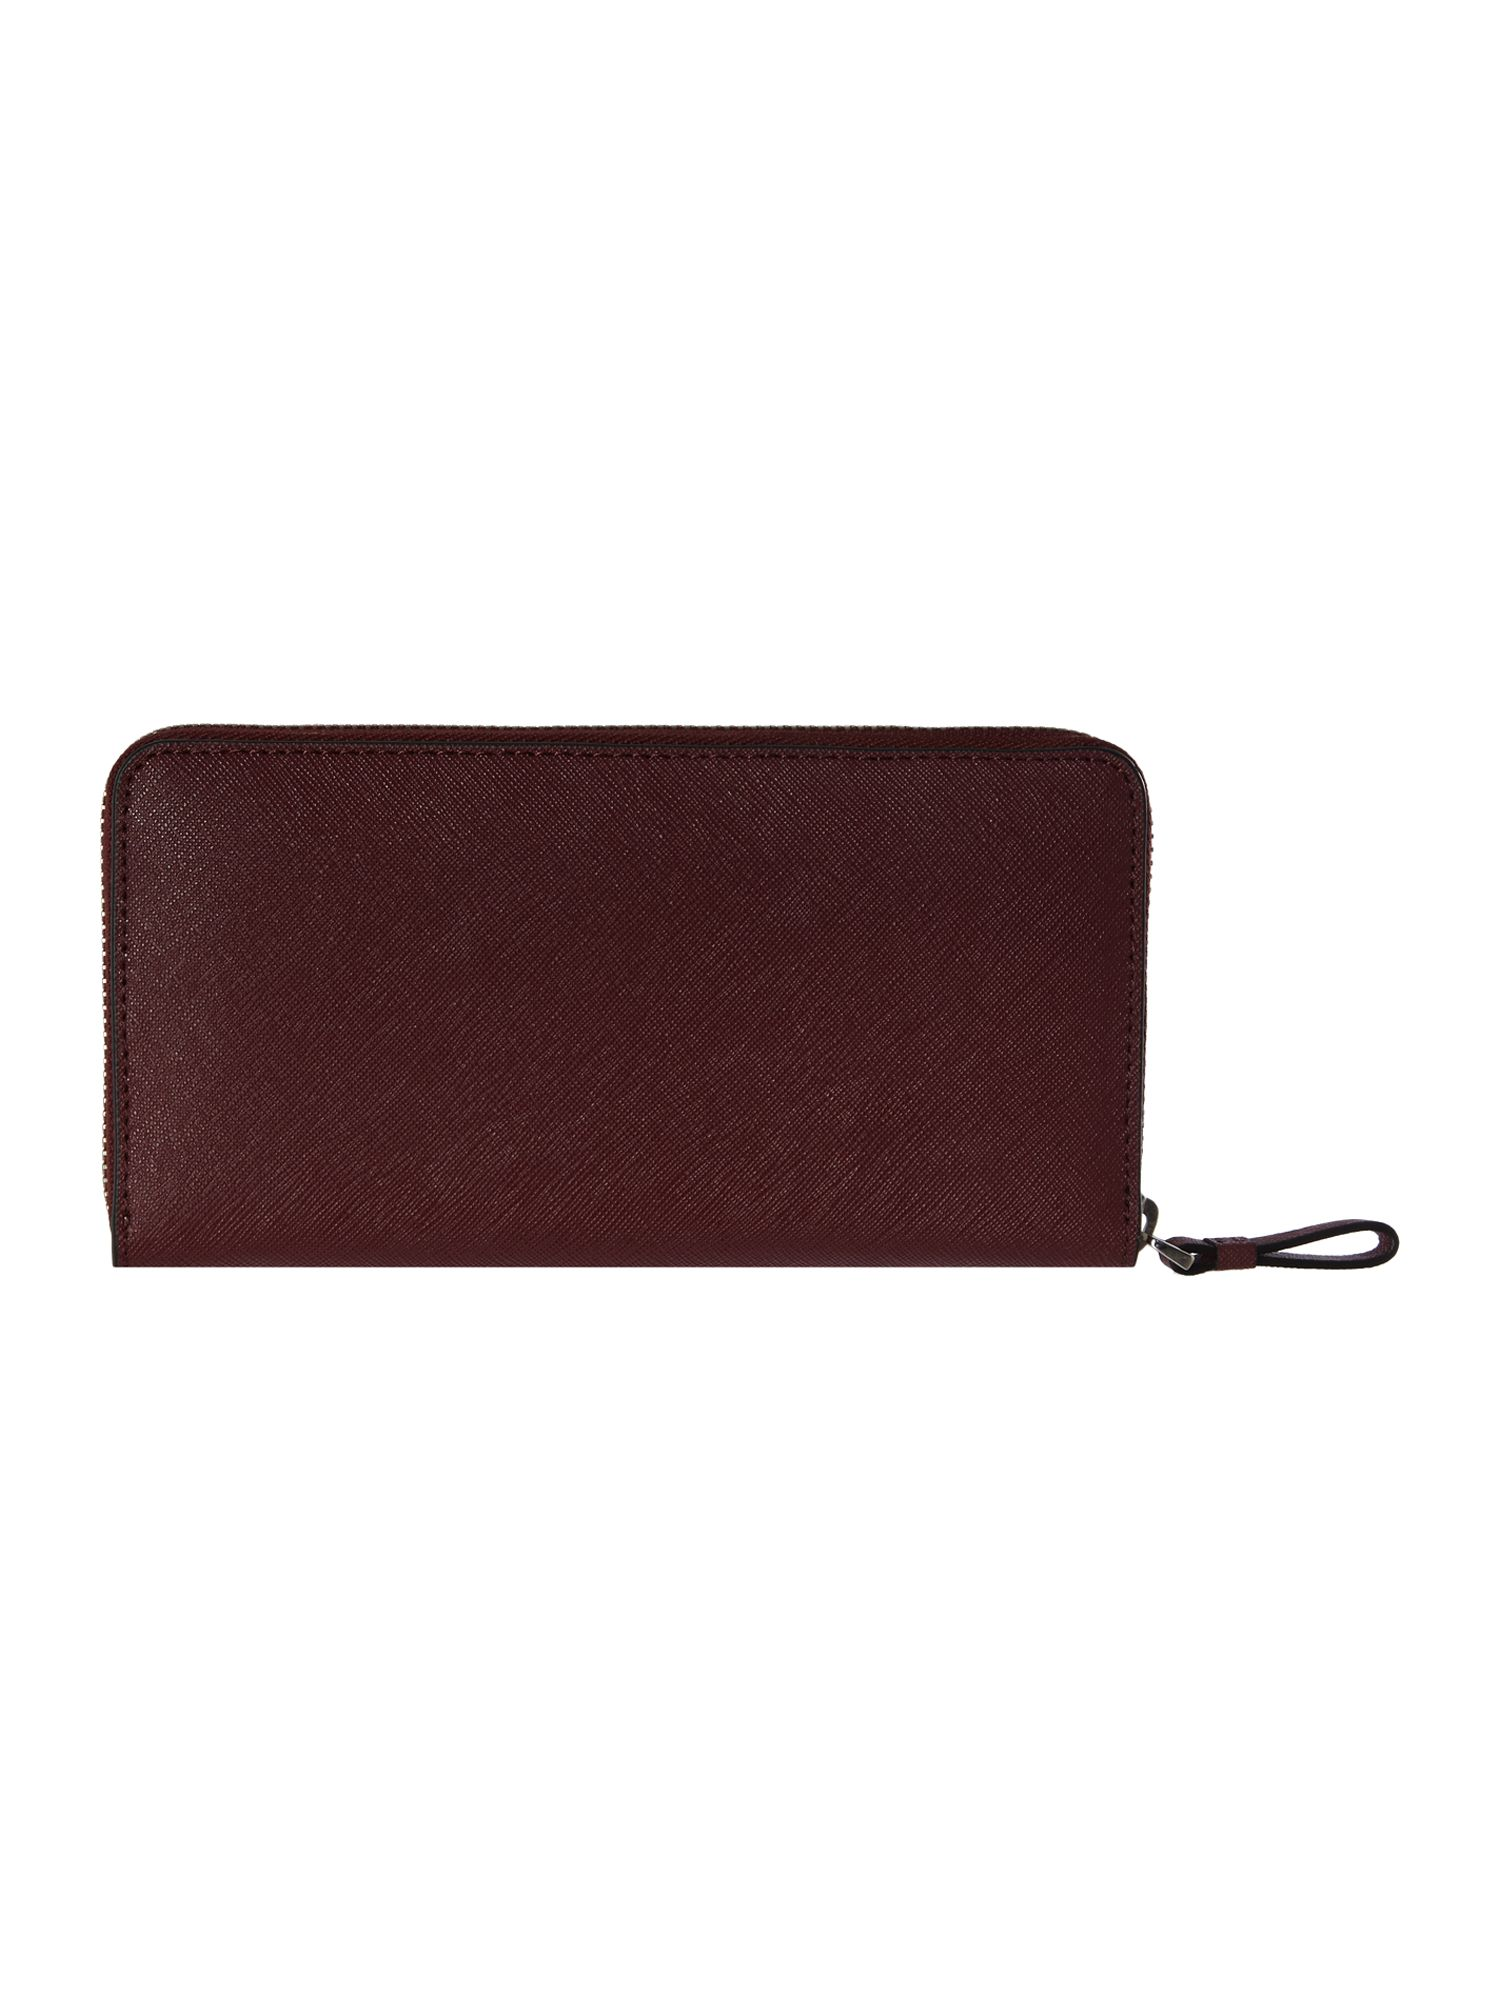 Sofie burgundy saffiano zip around purse